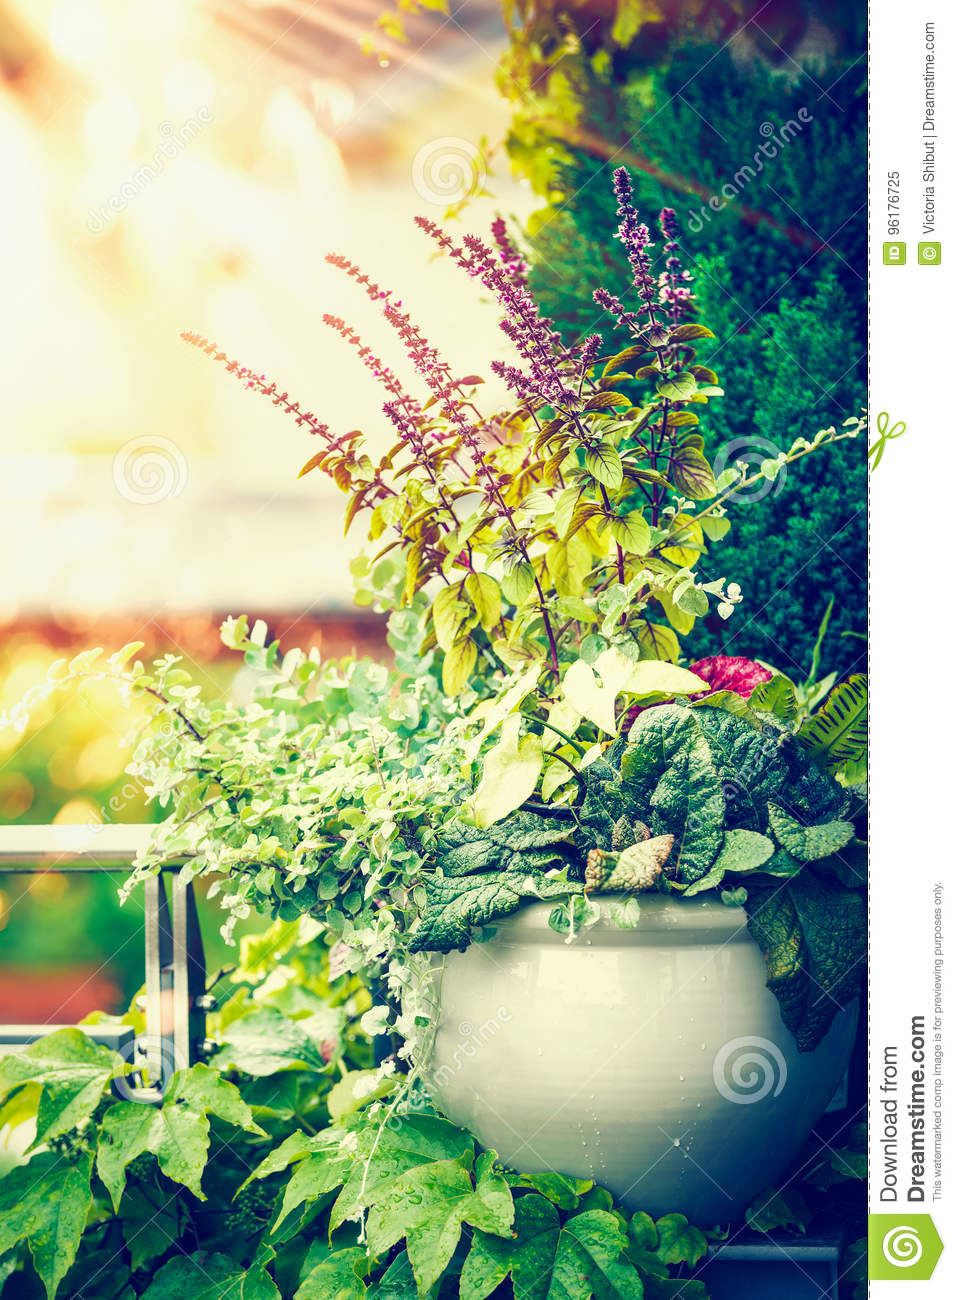 Download Beautiful Patio Flowers Pot On Balcony Or Terrace In Sunset Light.  Urban Container Gardening